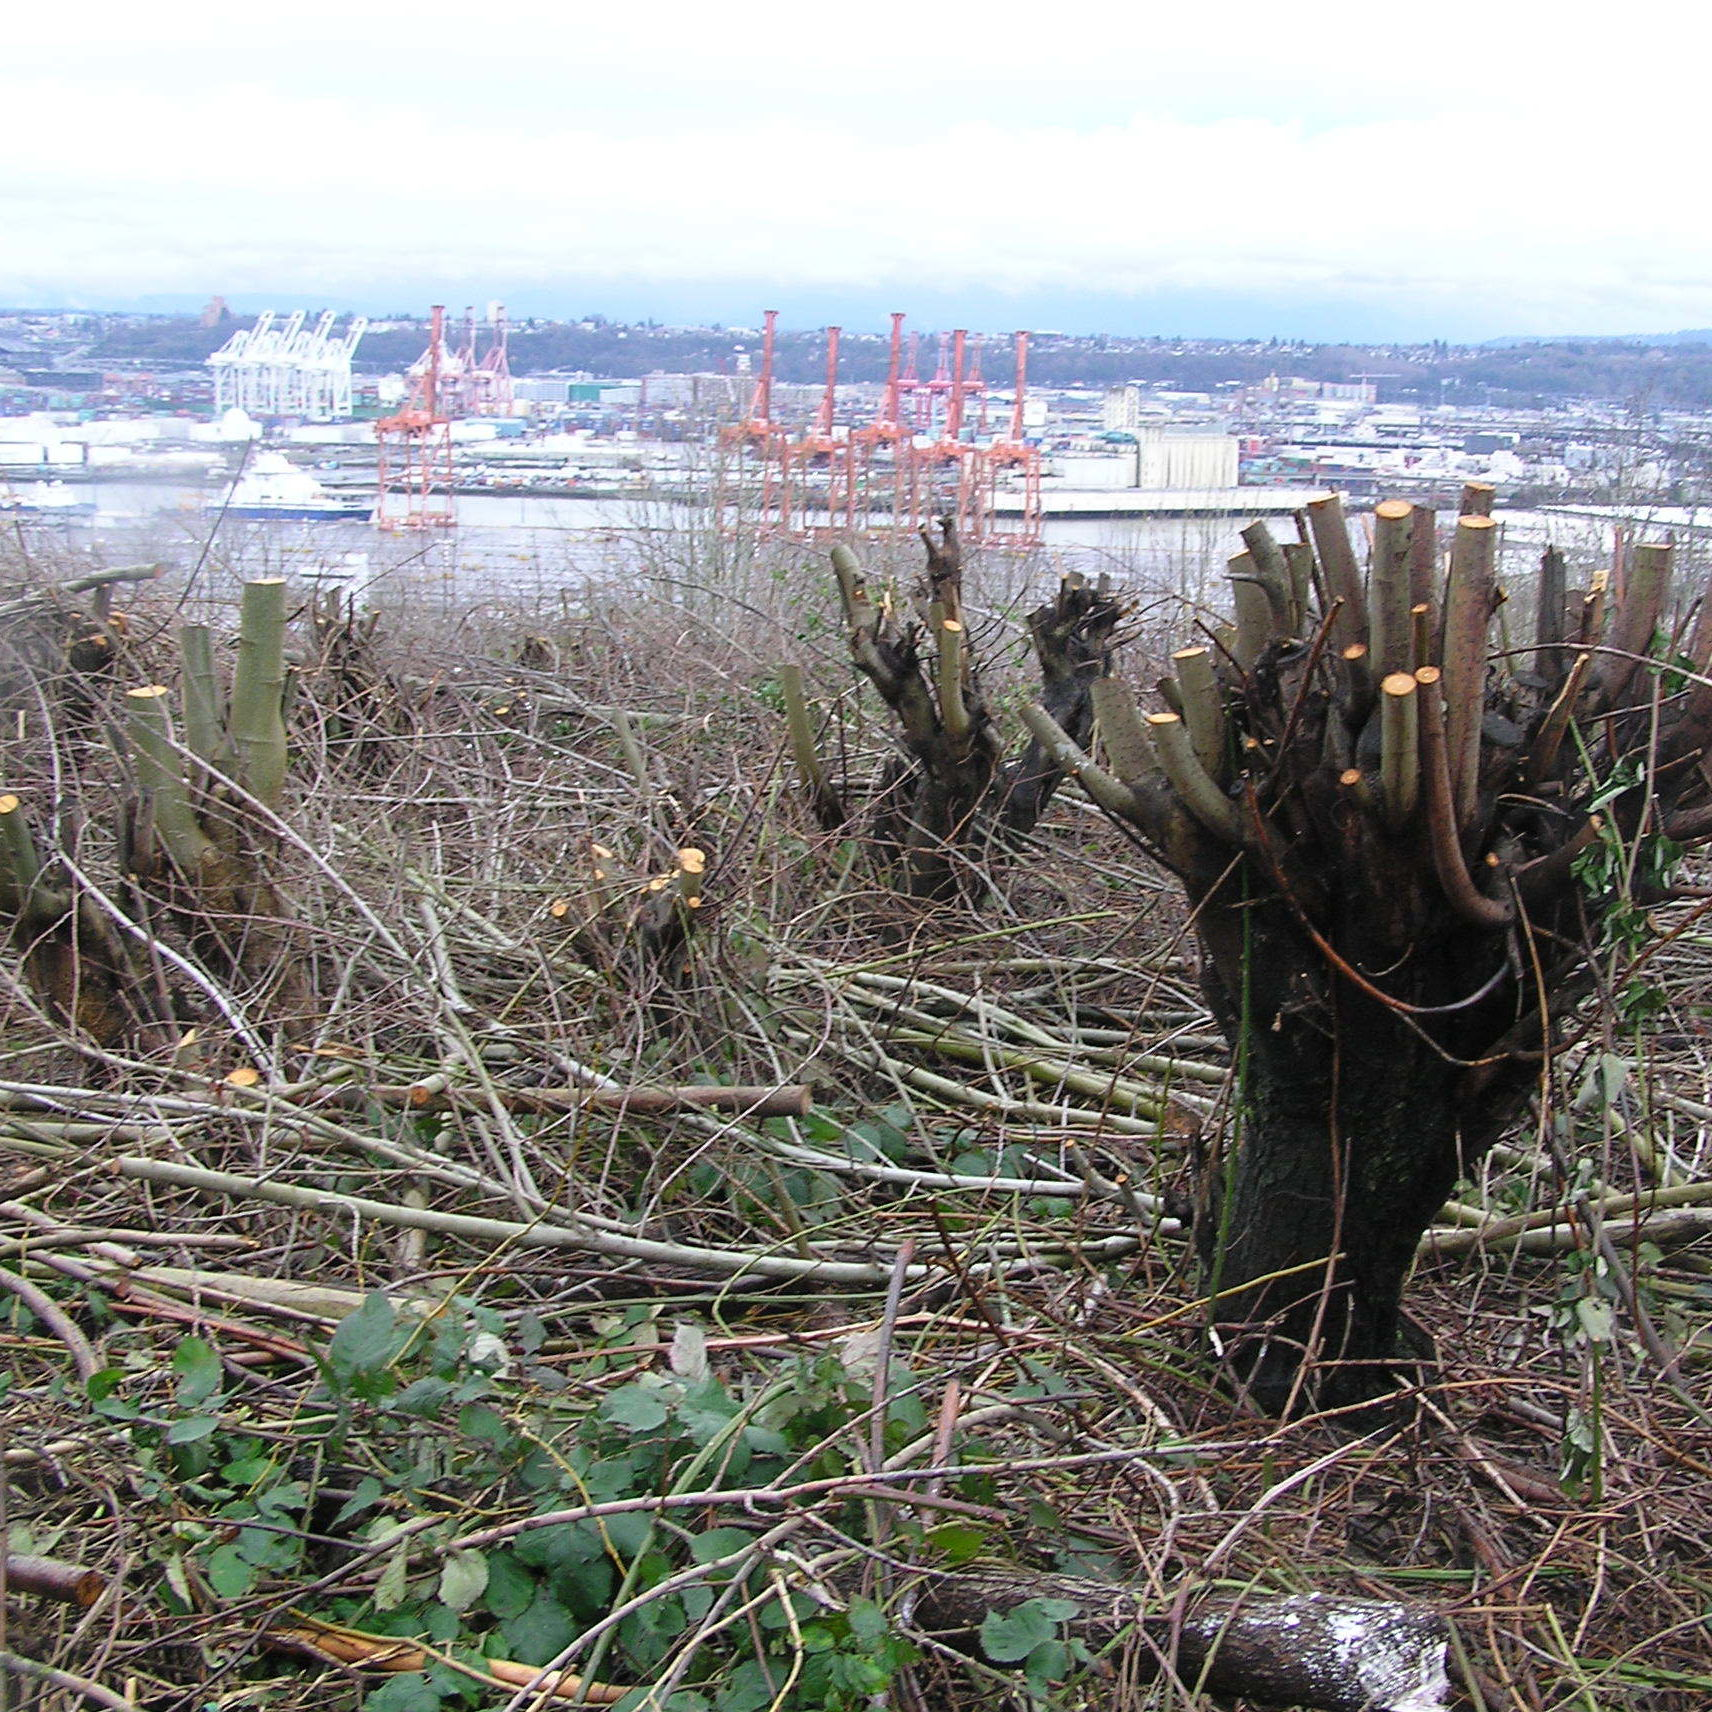 West seattle trees cut city lawsuit courtesy attorney wbrxro